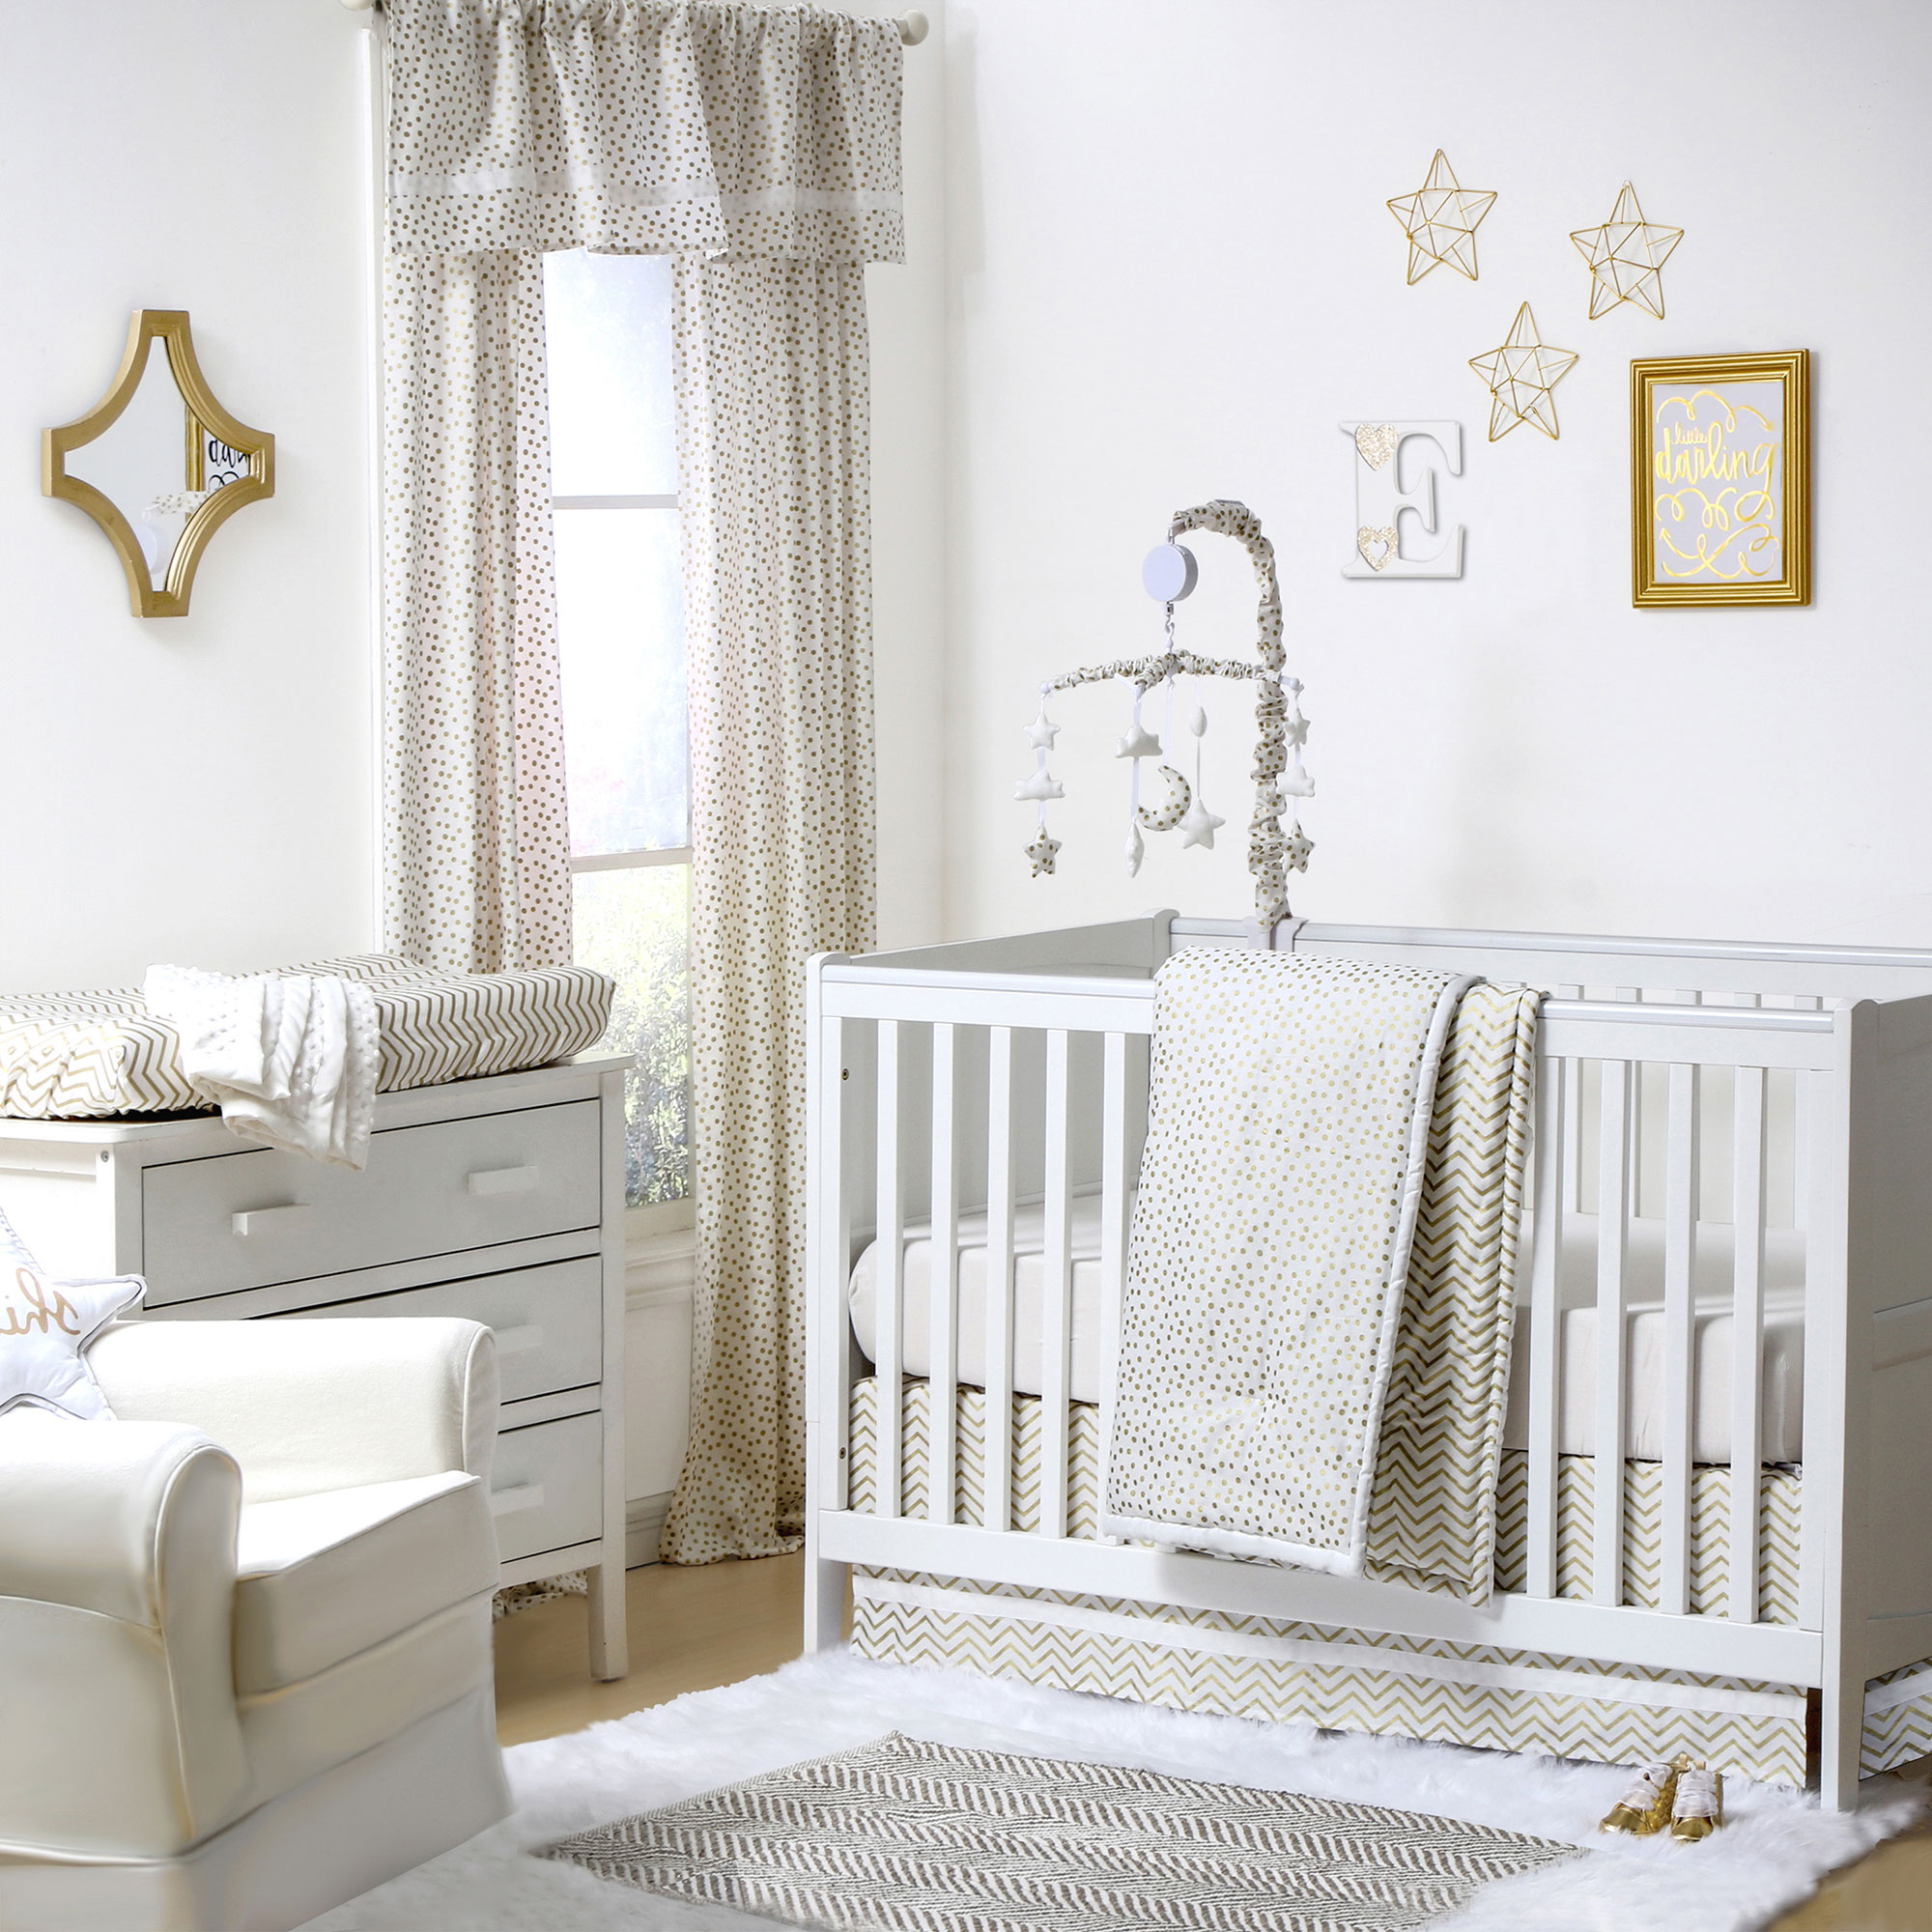 The Peanut Shell 3 Piece Baby Crib Bedding Set - Gold Zig Zag and Polka Dots - 100% Cotton Quilt, Crib Skirt and Sheet